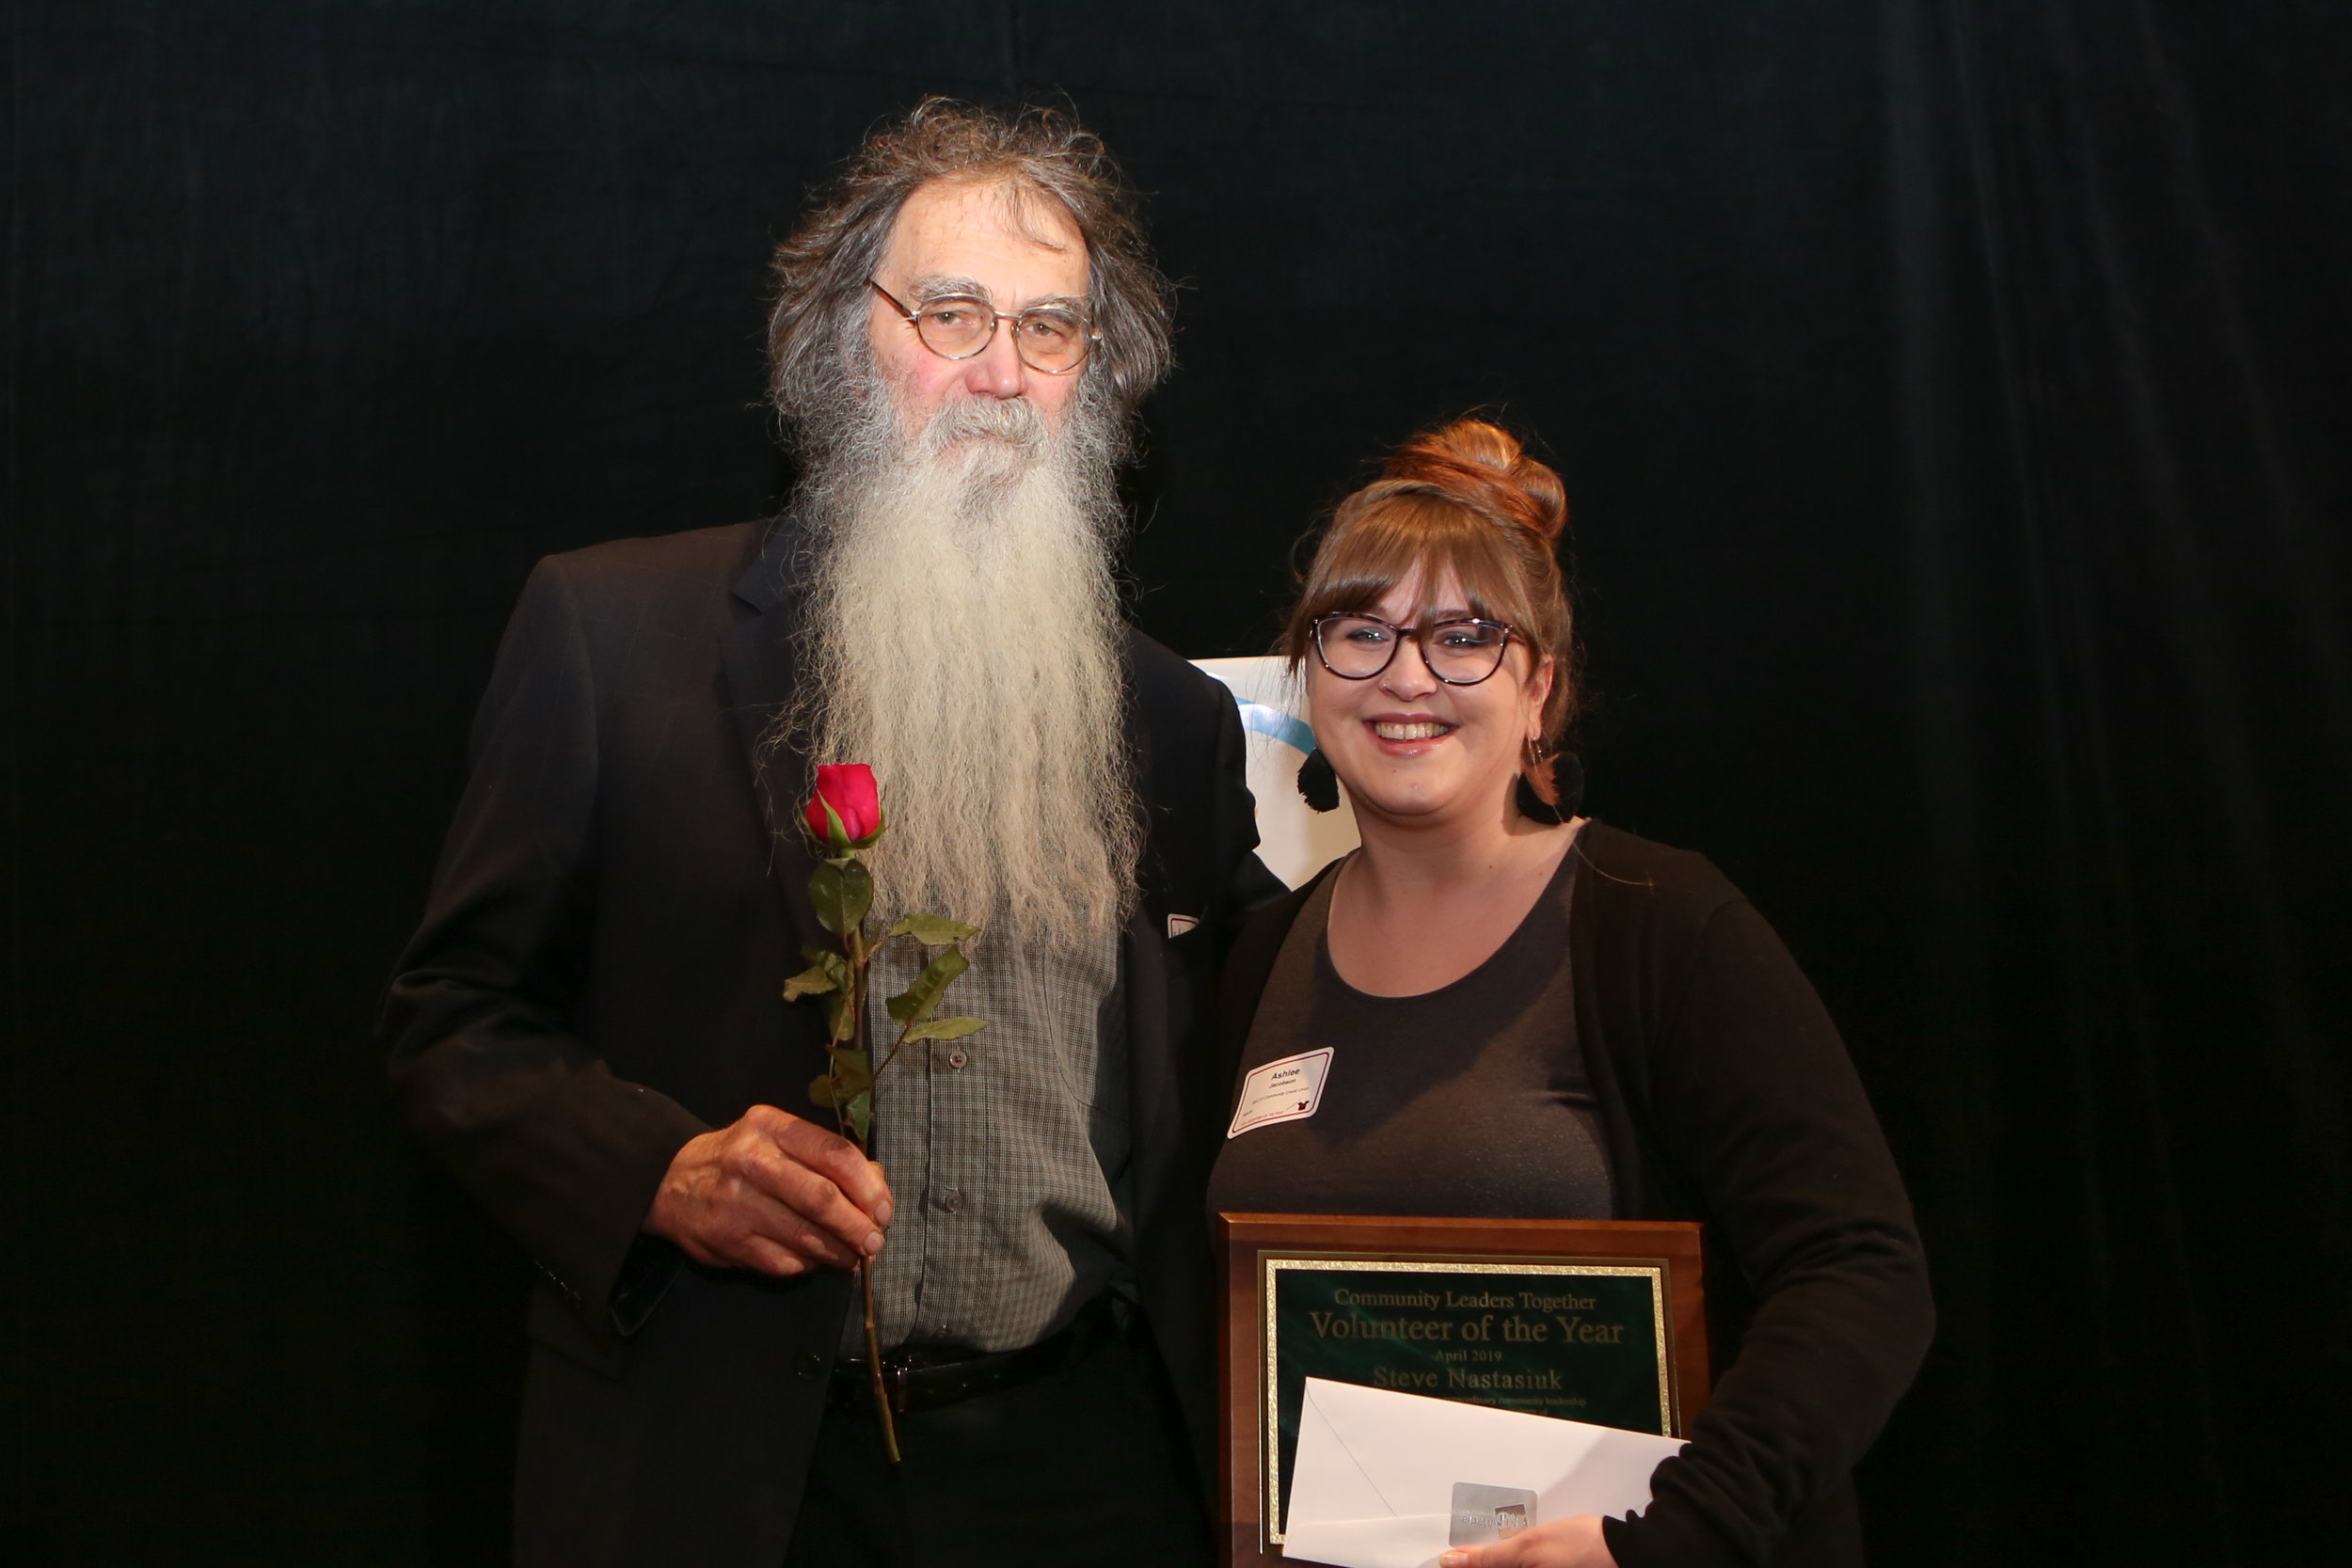 Looking Glass volunteer Steve Nastasiuk graciously accepts his award from Ashlee Jacobson from SELCO, who presented the awards in the Education & School Volunteer category.